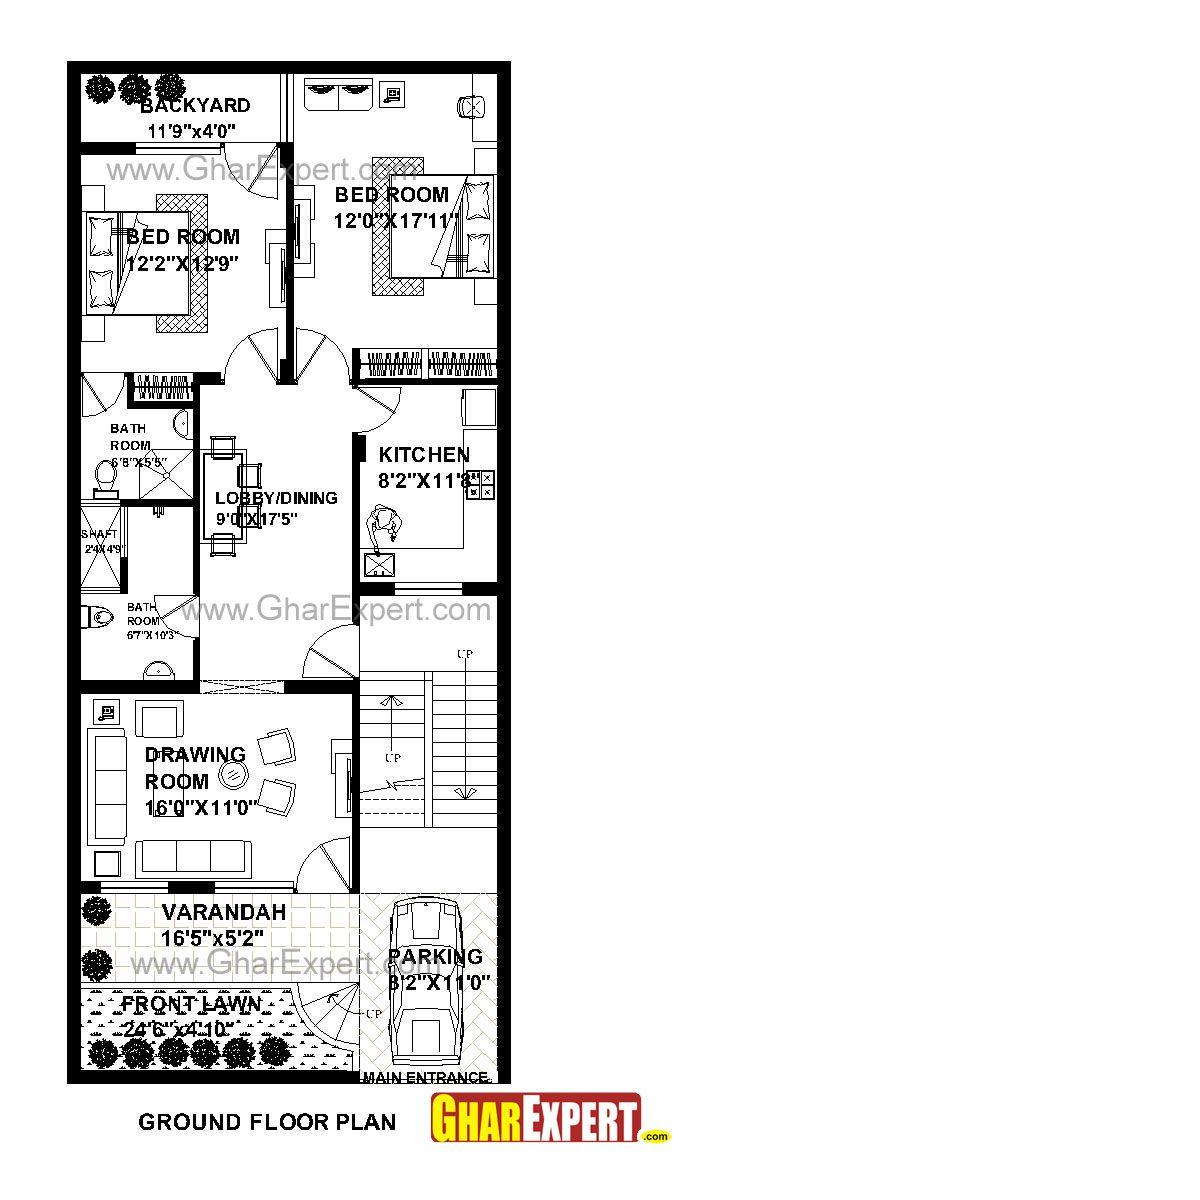 house plan for 26 feet by 60 feet plot plot size 173 square yards house plan for 26 feet by 60 feet plot plot size 173 square yards